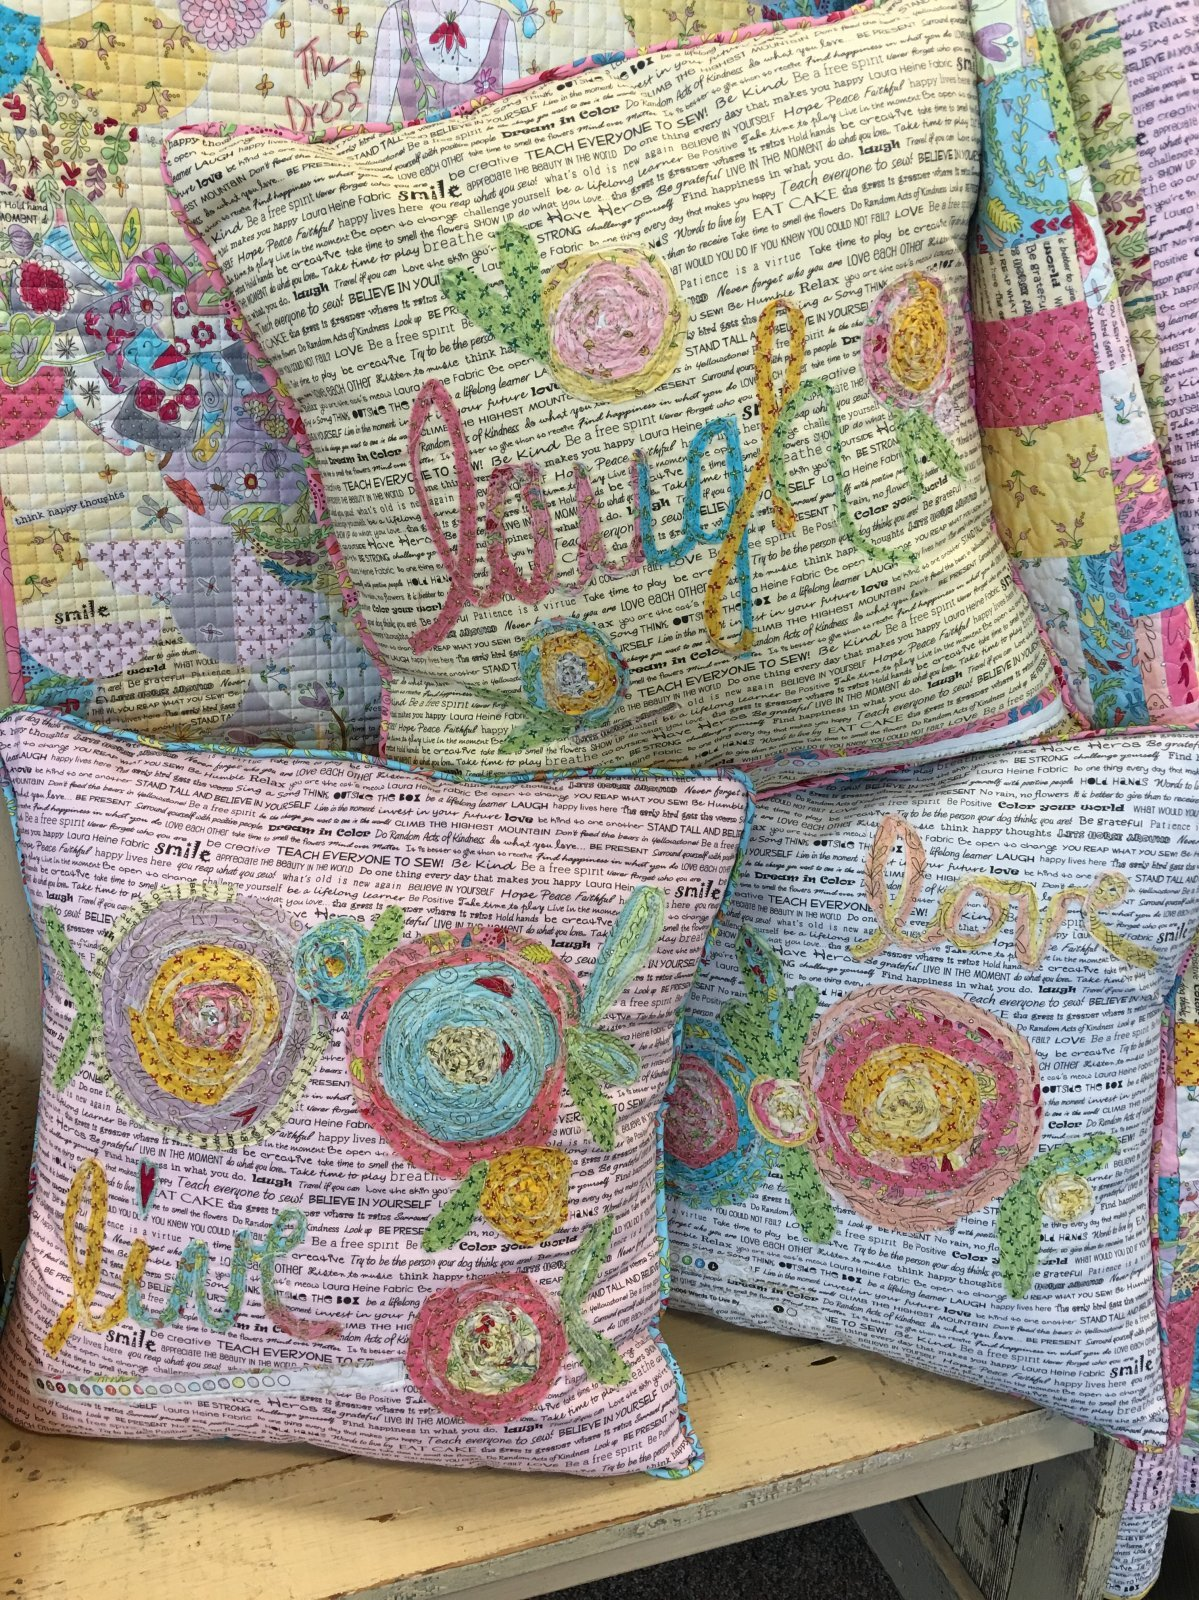 Live Laugh Love Pillows Collage by Laura Heine